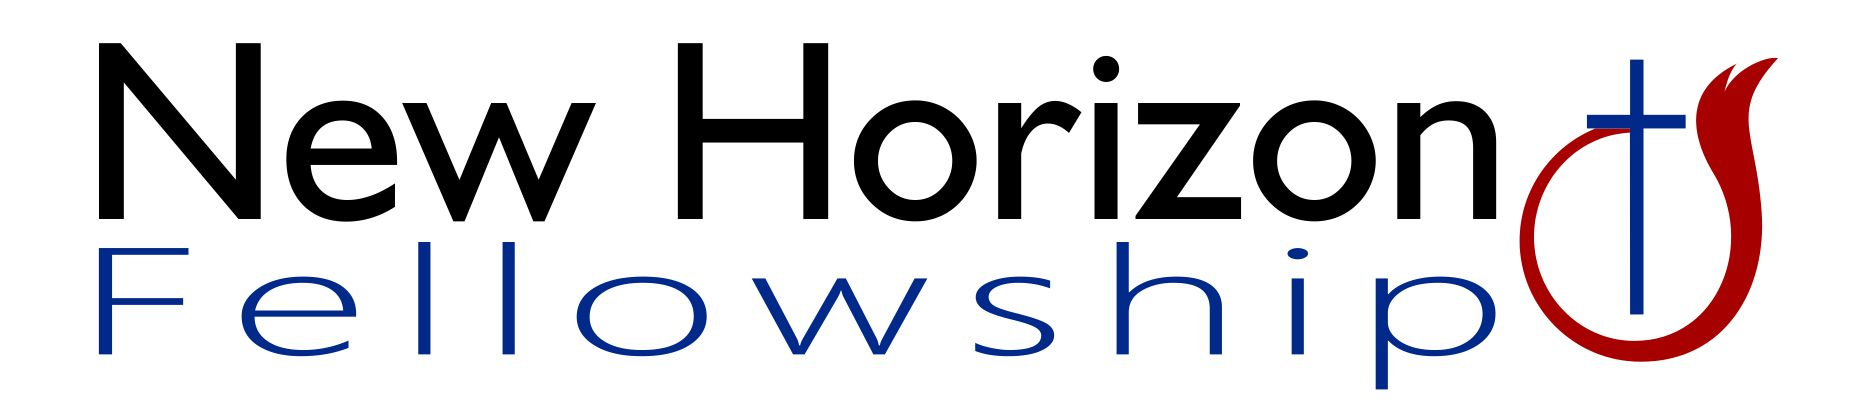 New Horizon Fellowship Church Of God, Evansville IN